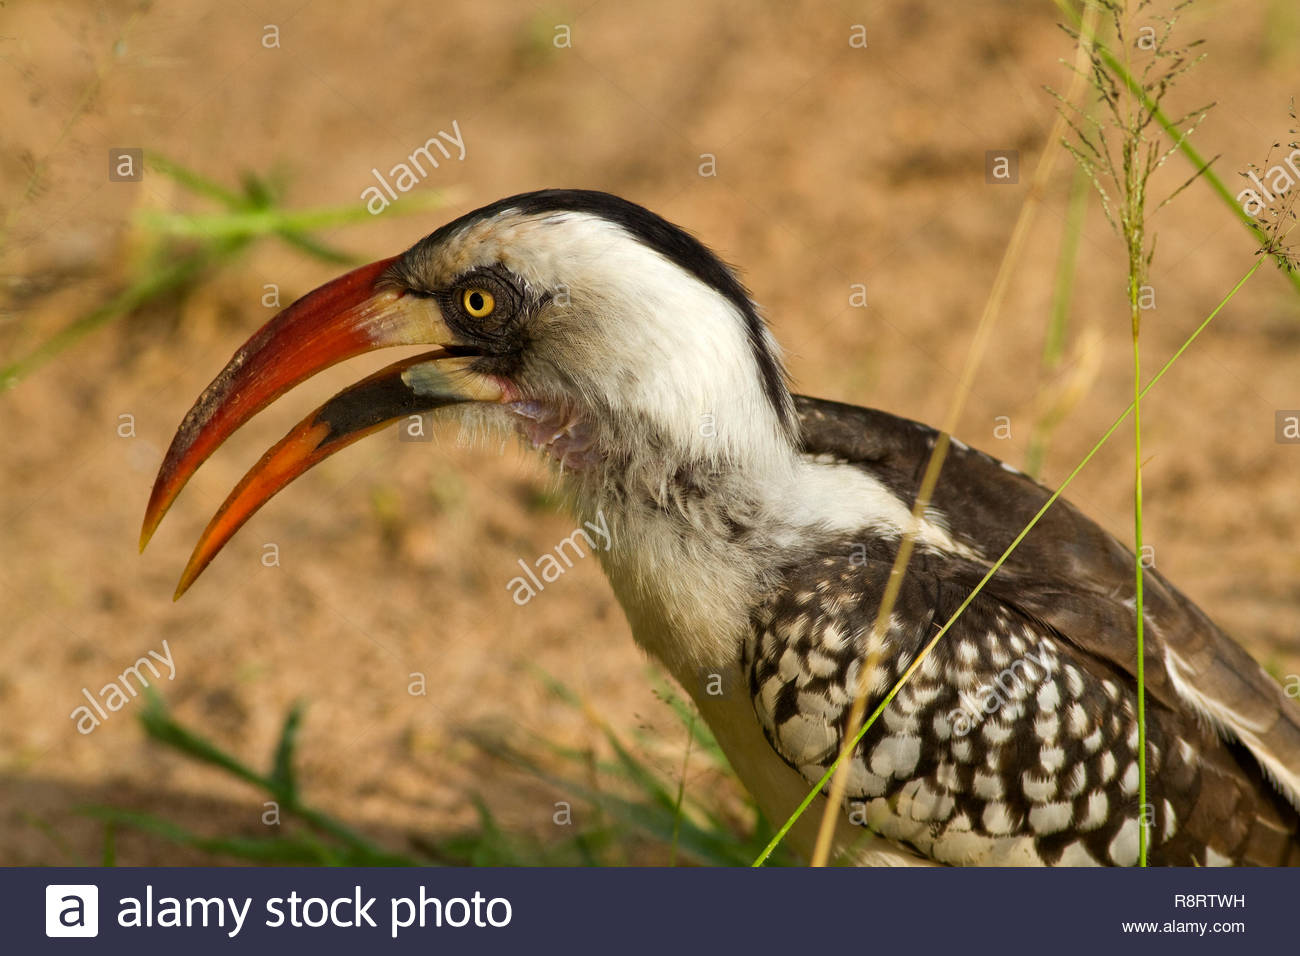 Portrait of the Ruaha Red-billed hornbill showing the distinctive colouration around the eyes and the bill of the male which has made this a new speci - Stock Image